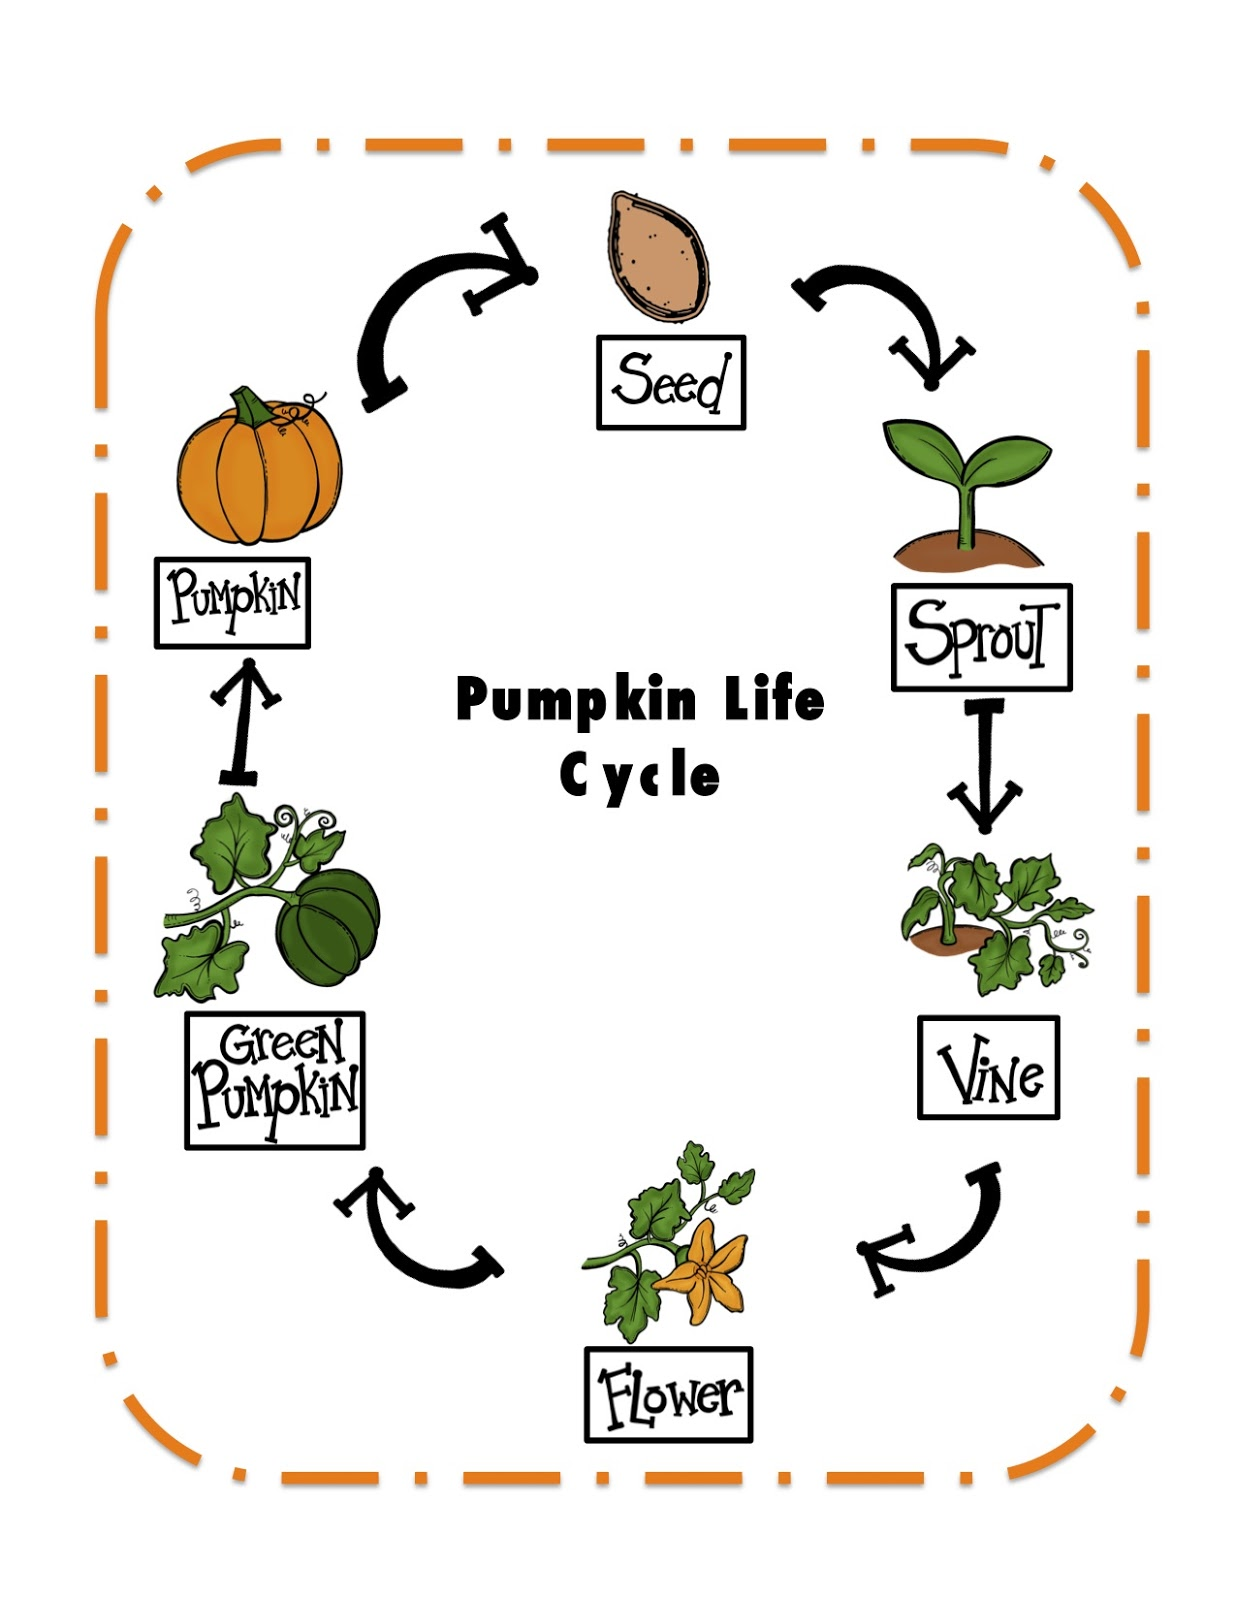 Agile image with regard to life cycle of a pumpkin printable